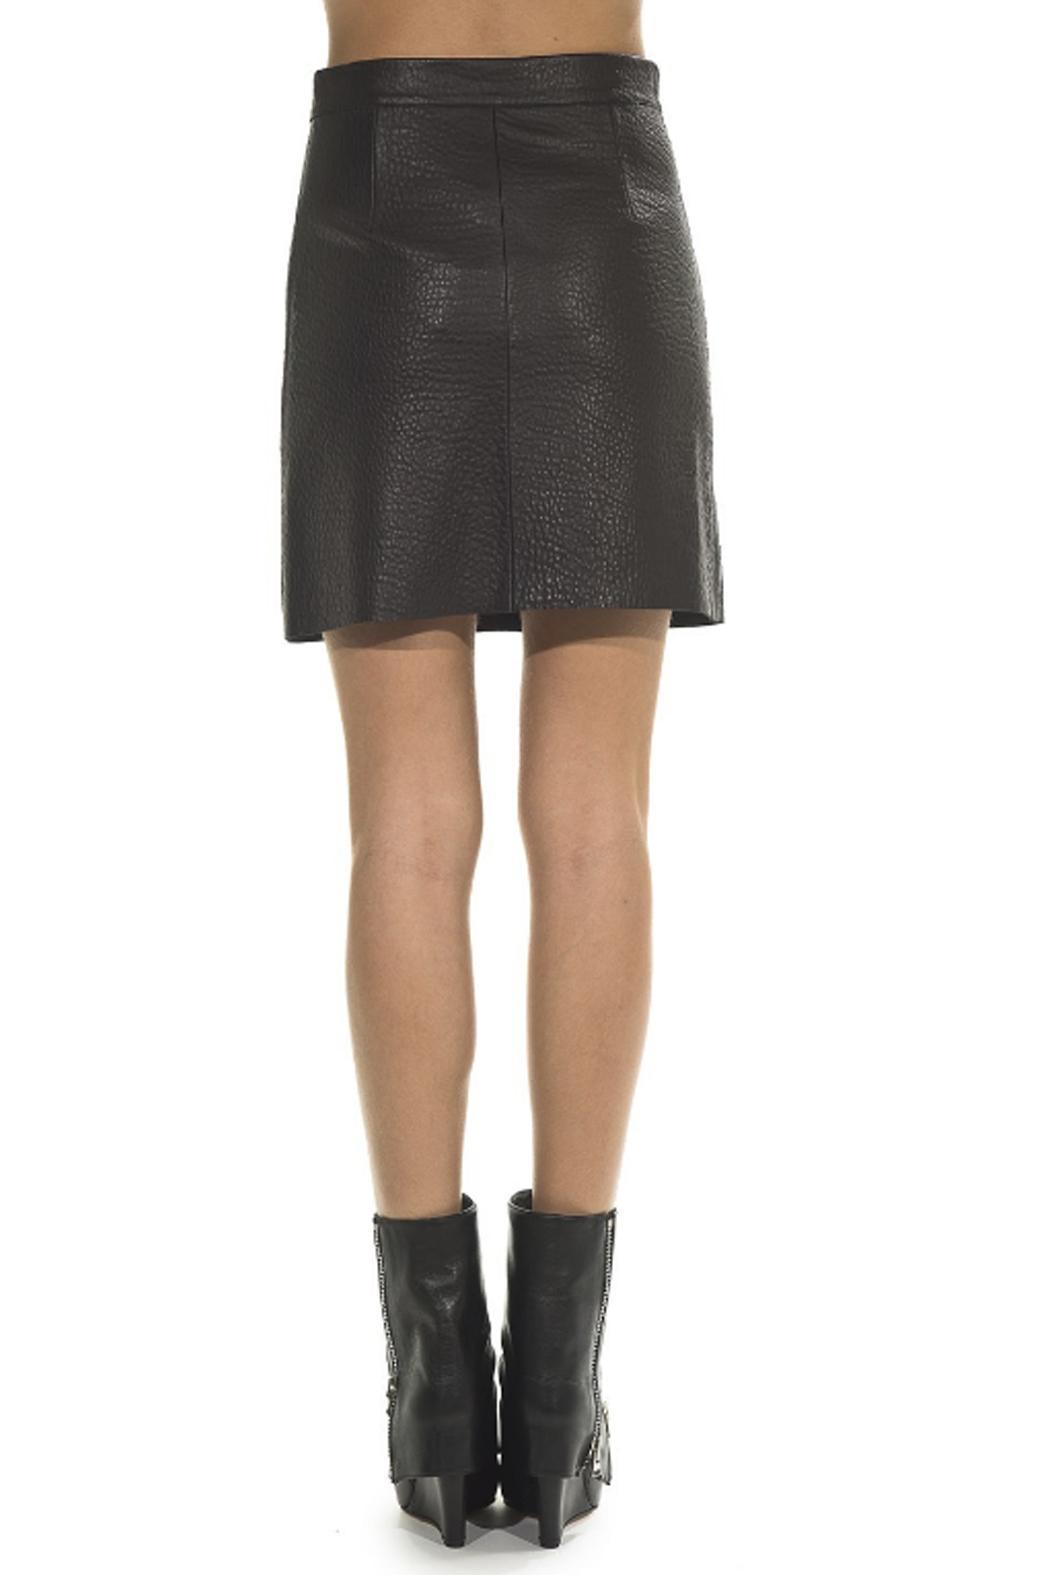 hotel particulier Black Leather Skirt - Side Cropped Image